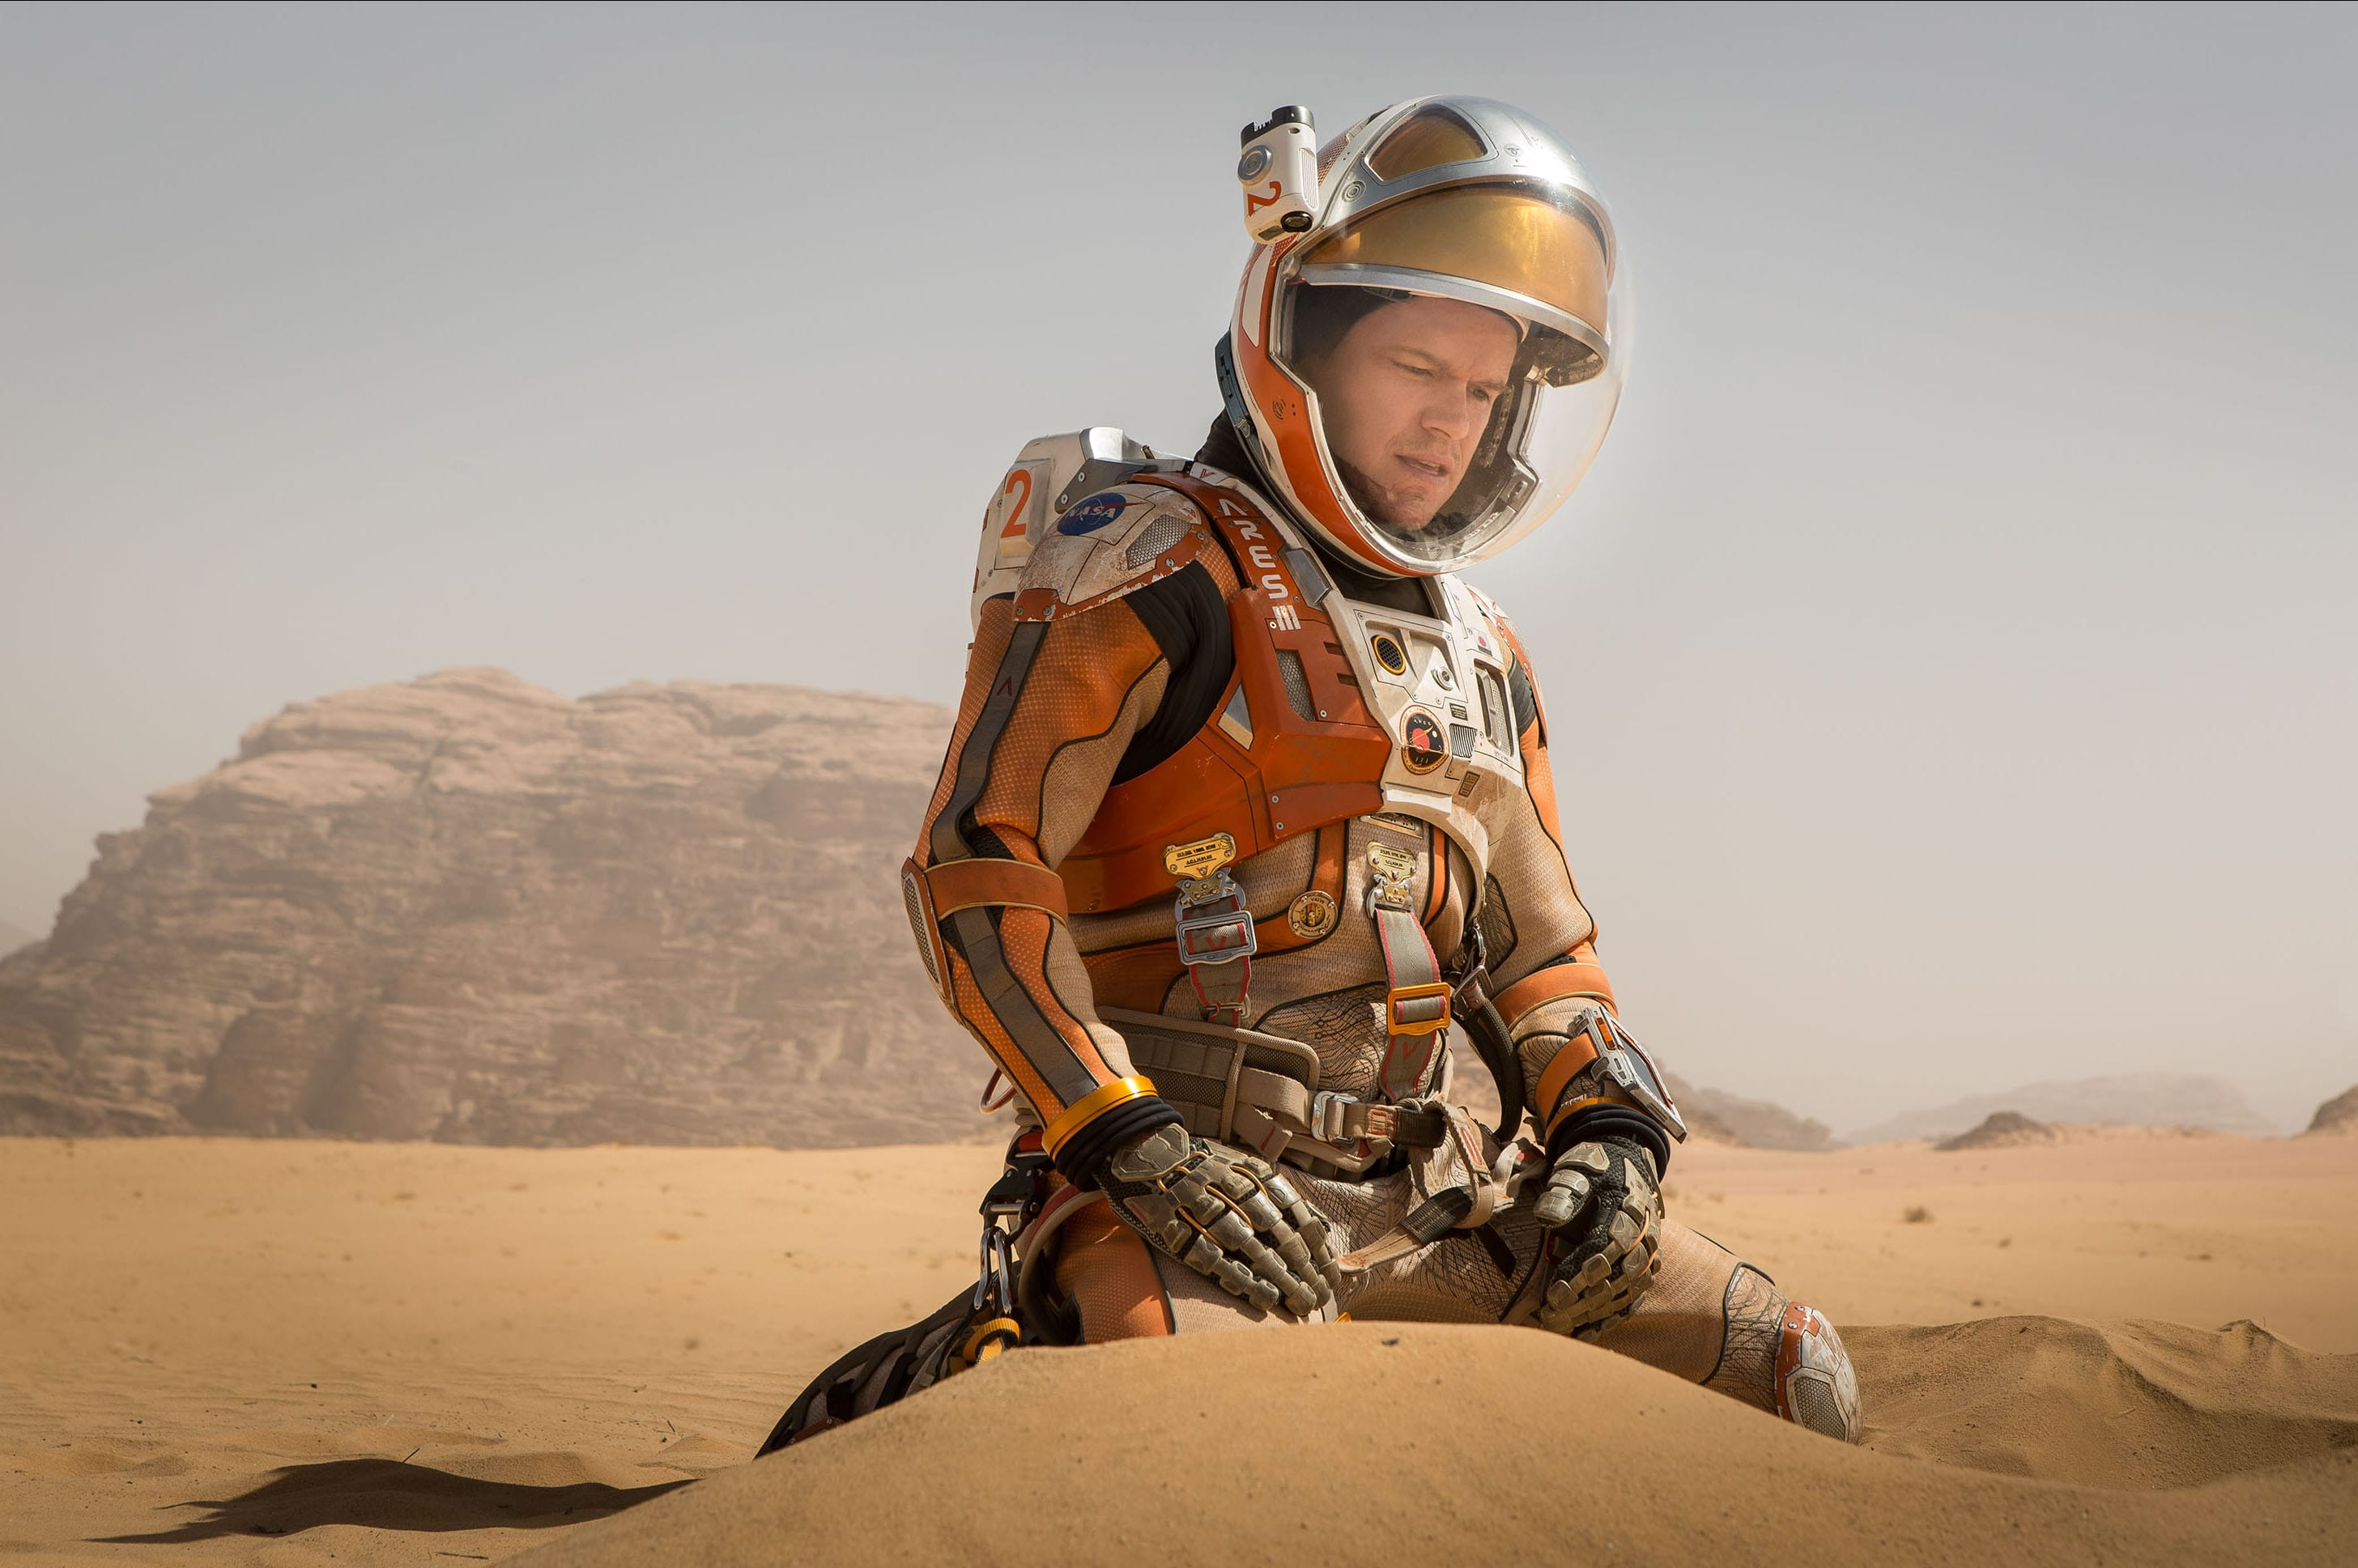 The Martian Backgrounds